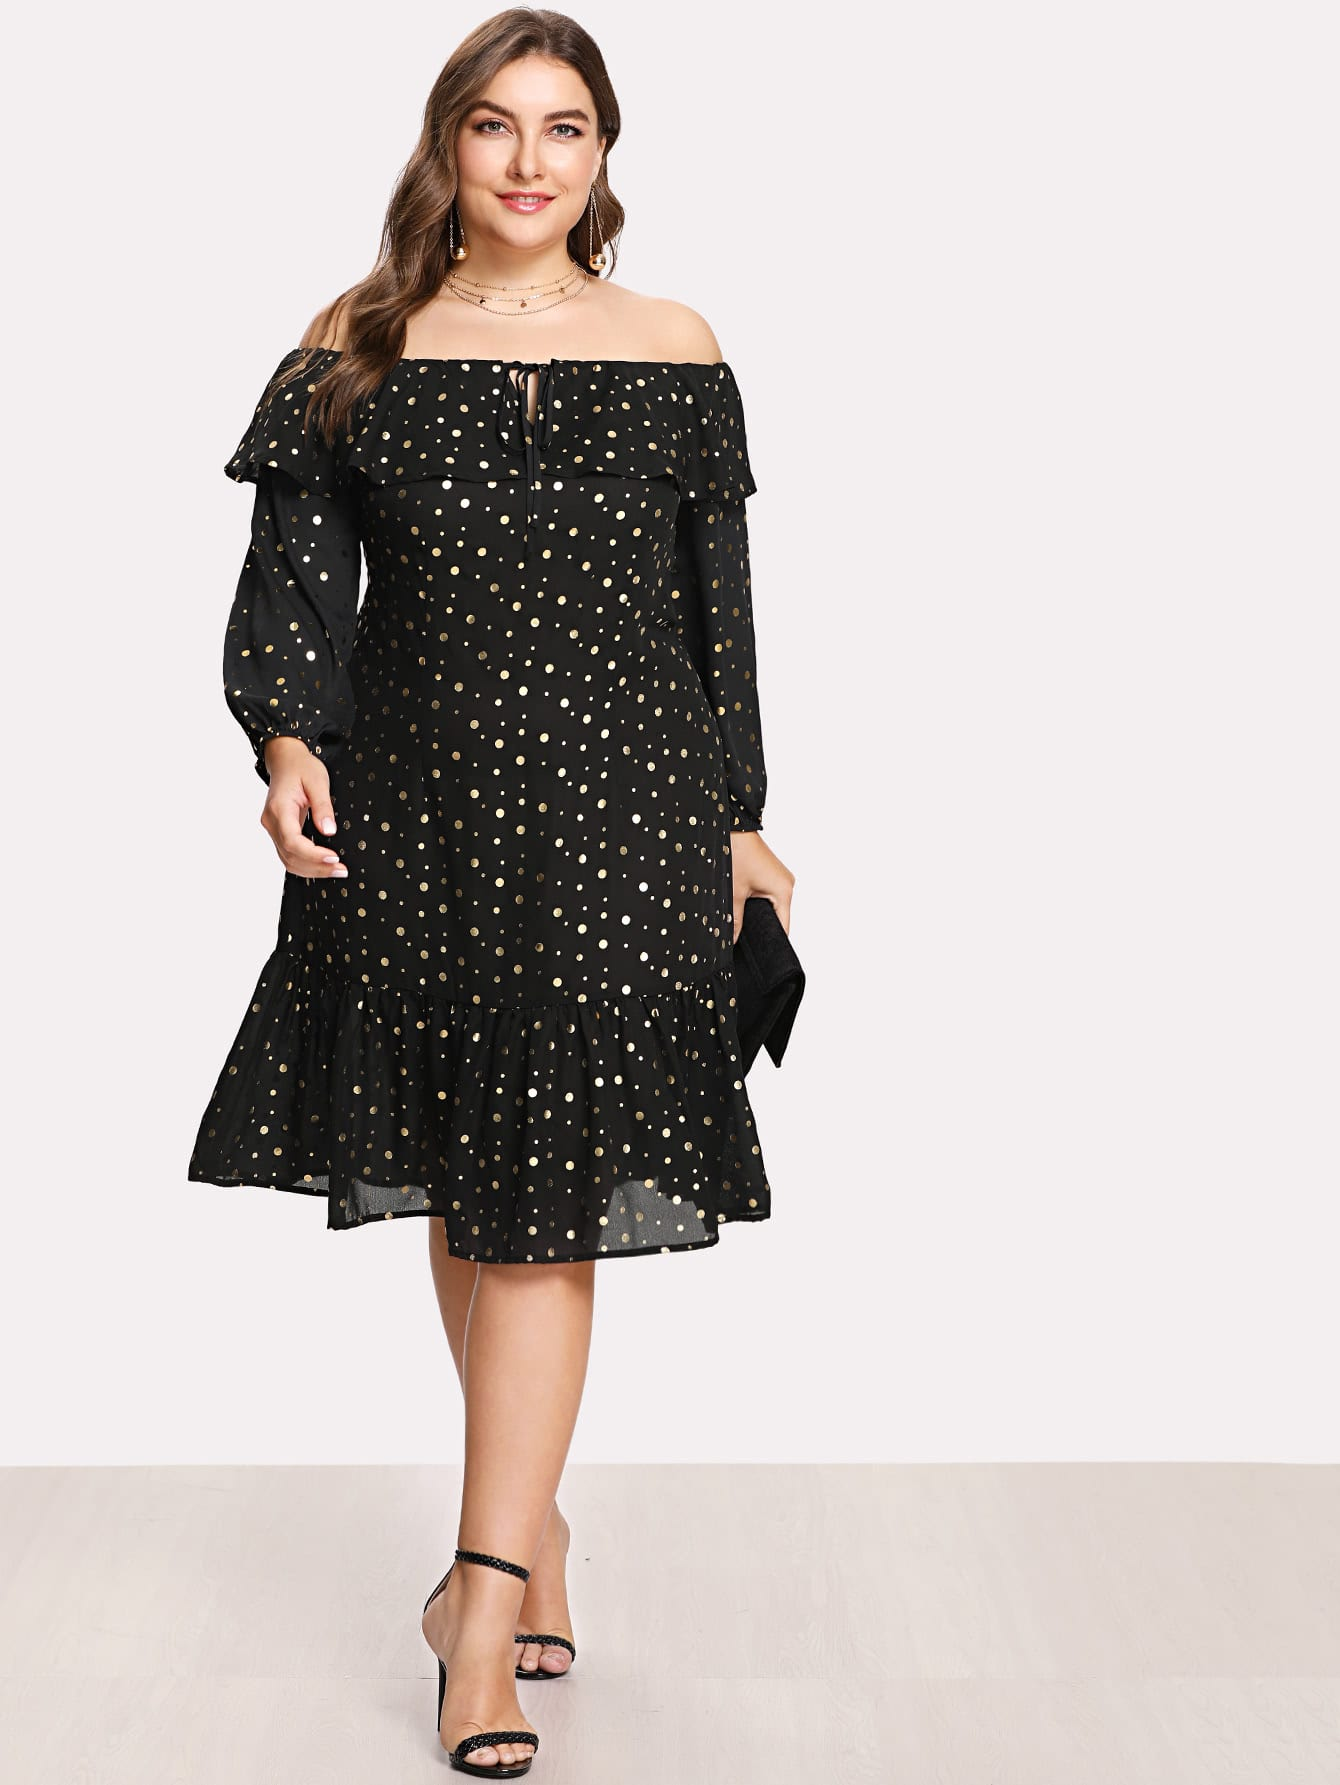 Knot Front Flounce Trim Polka Dot Bardot Dress flounce one shoulder polka dot dress